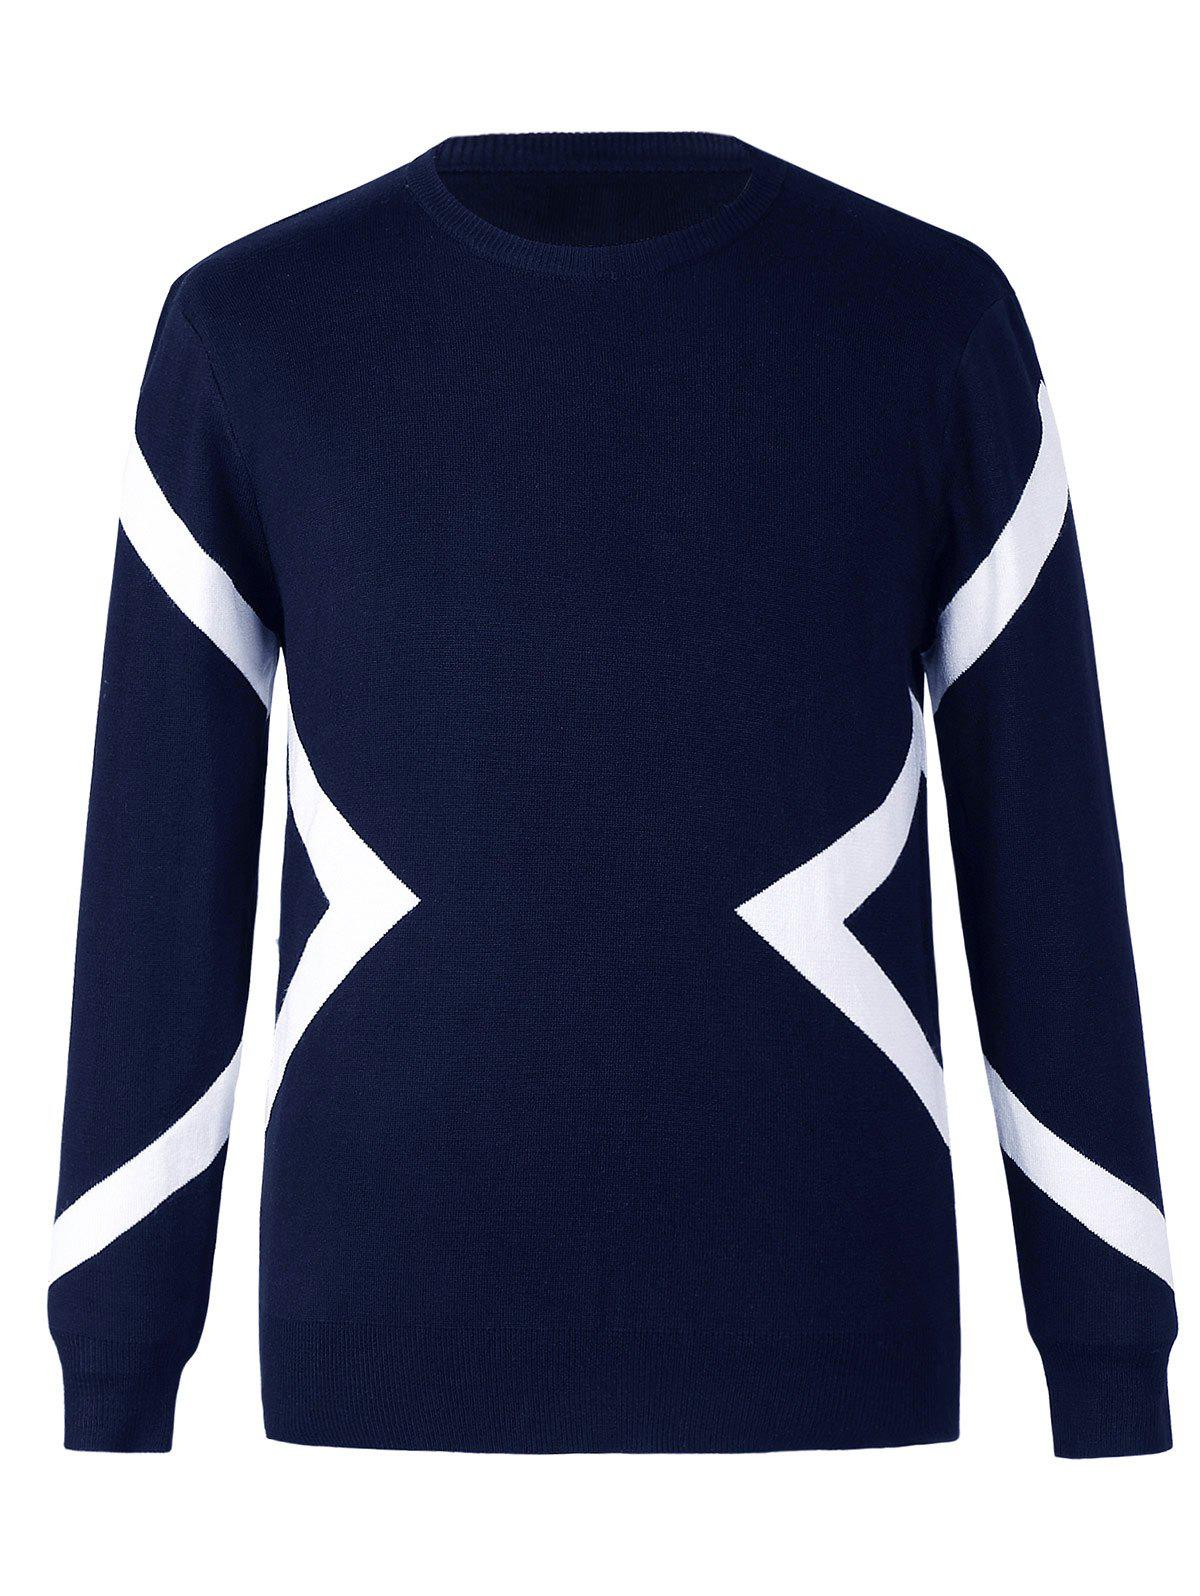 Fashionable Line Design Round Neck Long Sleeves Sweater For Men - PURPLISH BLUE 4XL